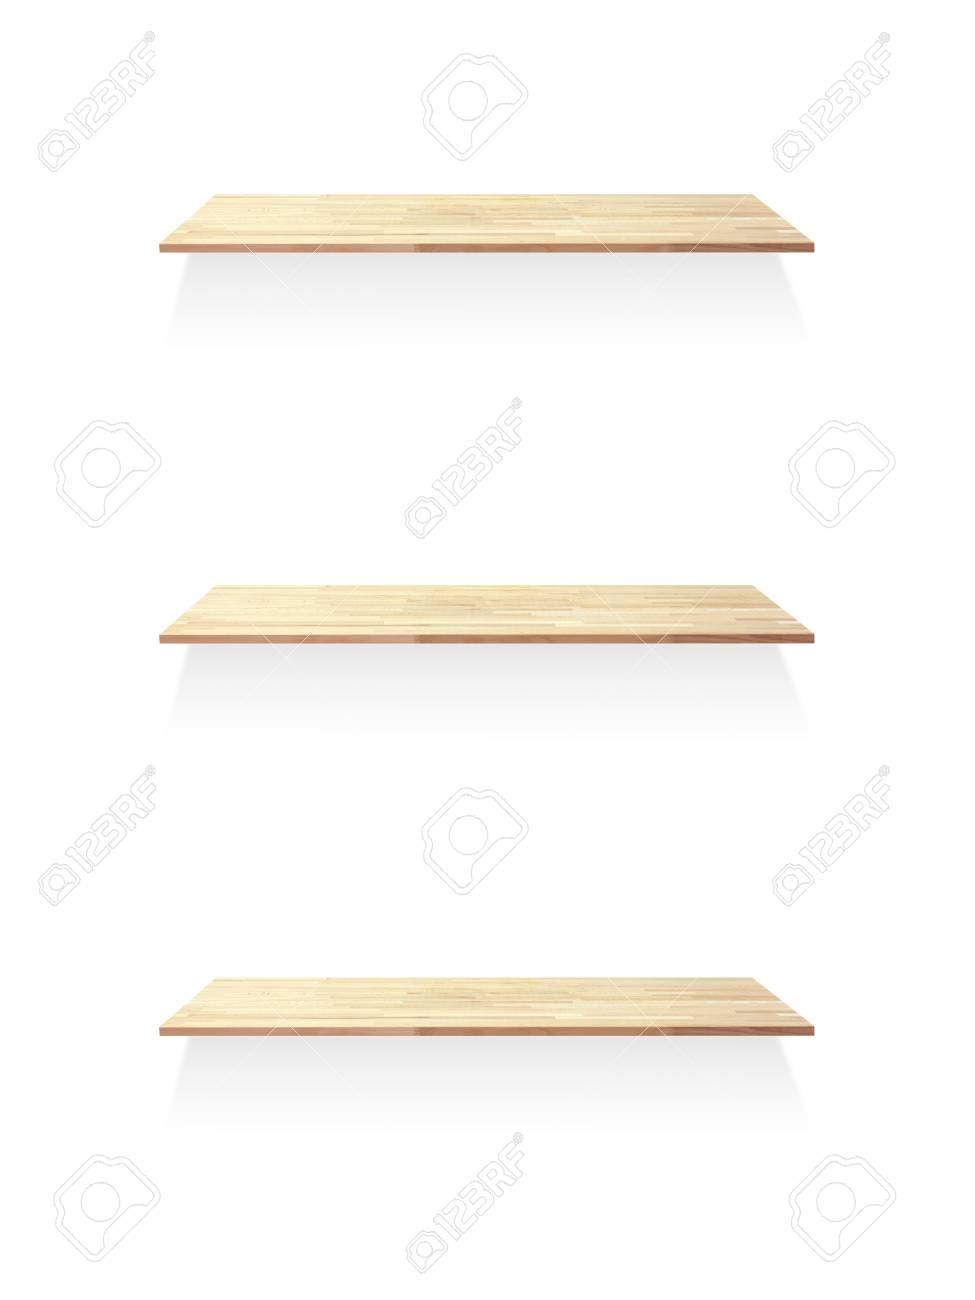 A wooden book shelve isolated against a white background Stock Photo - 15806747